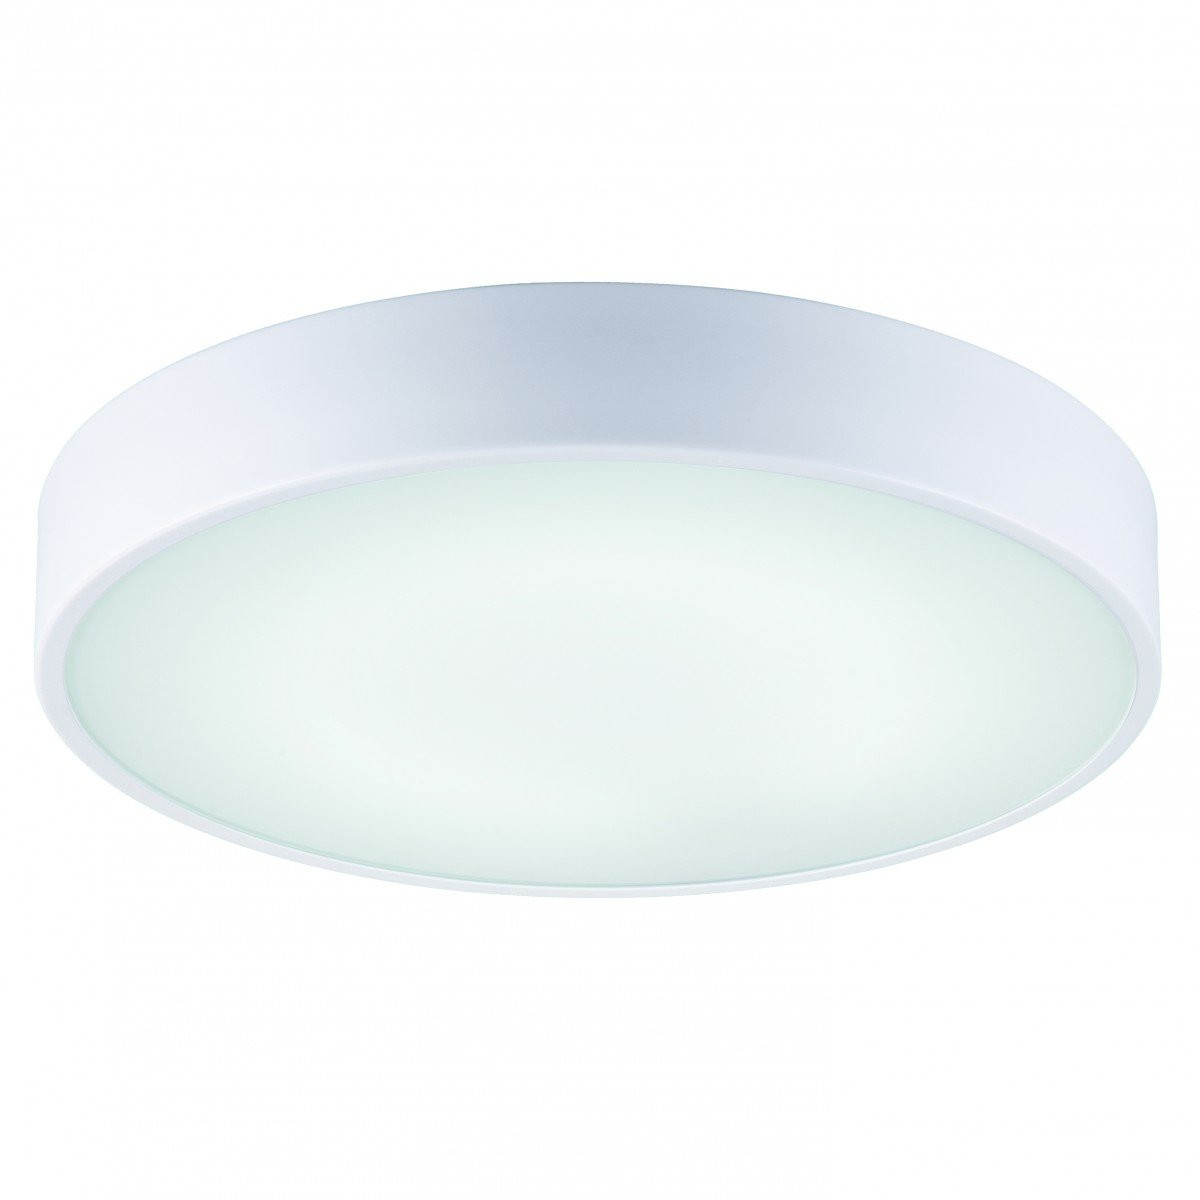 p exo lighting lari plafon de techo blanco led 40w